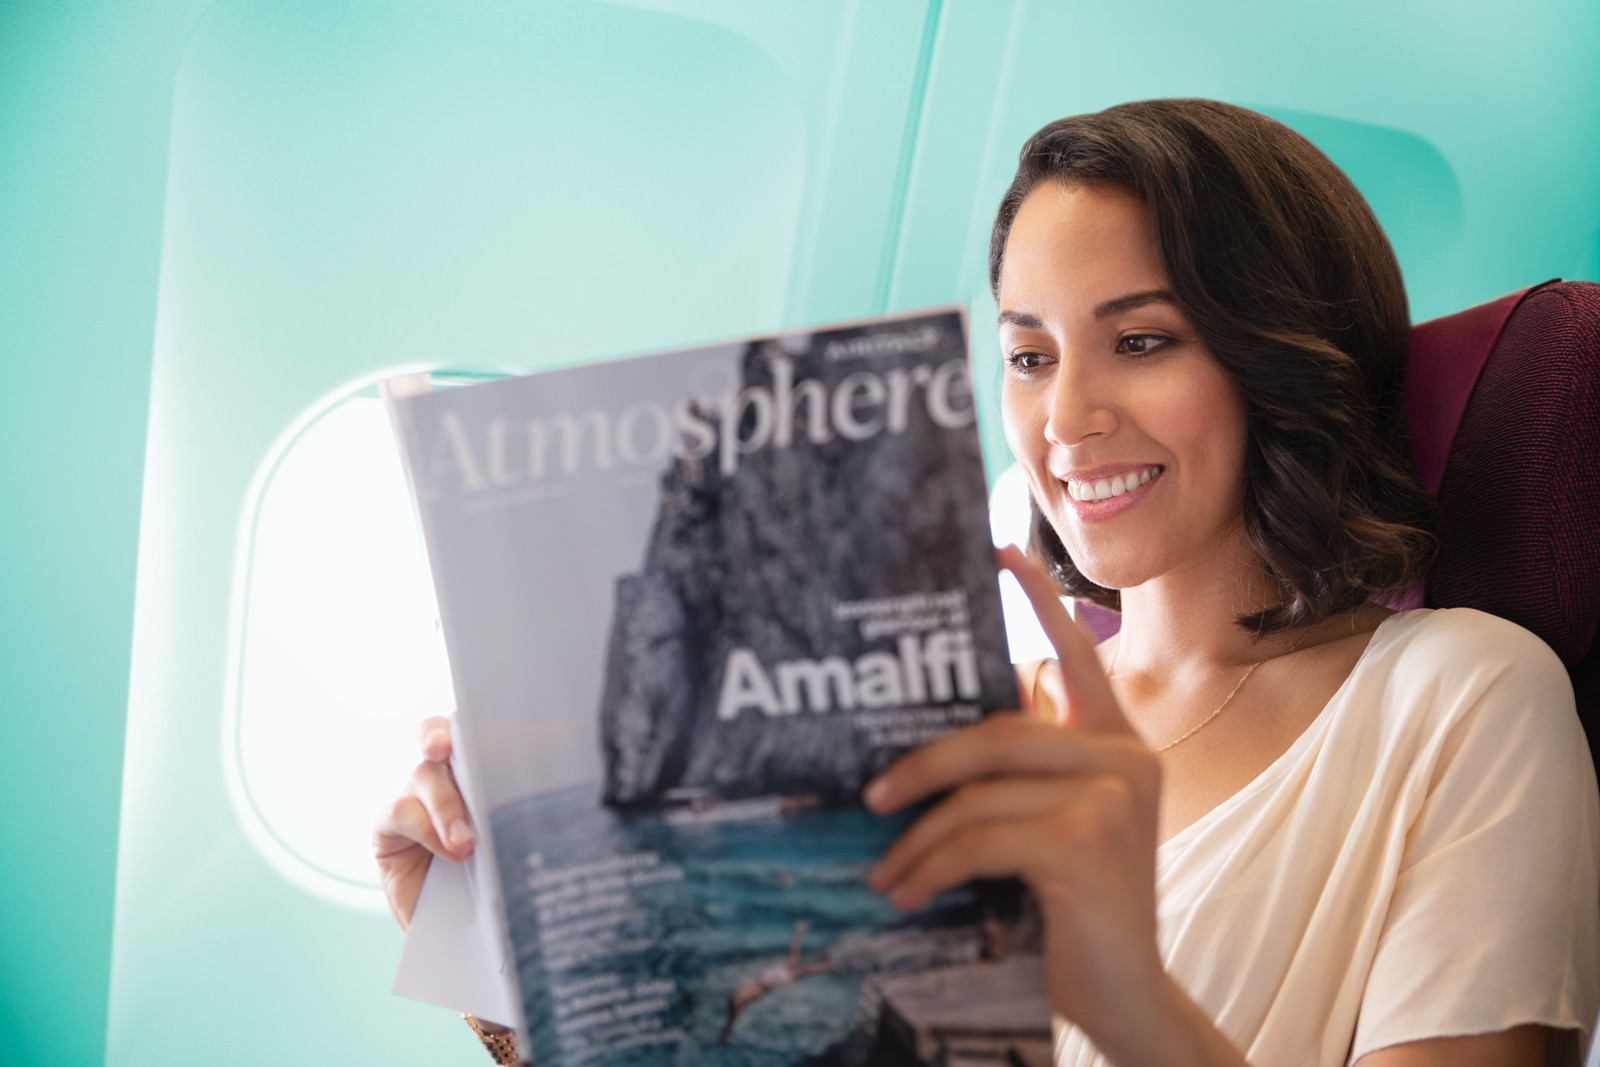 Air Italy in flight magazine Atmosphere